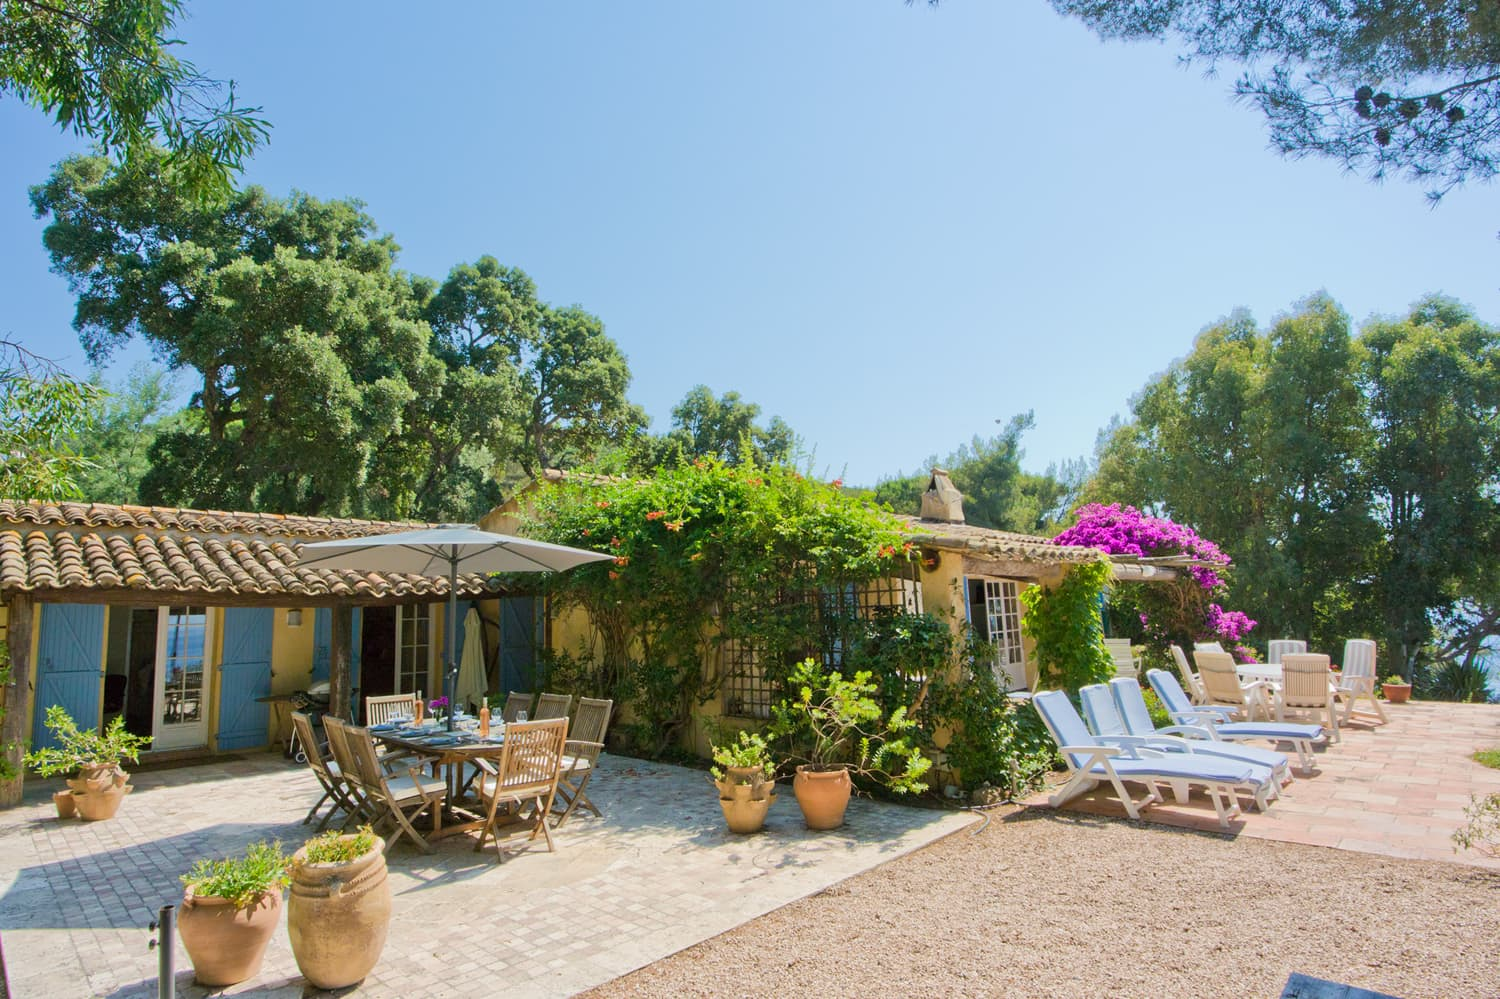 Holiday accommodation in Provence